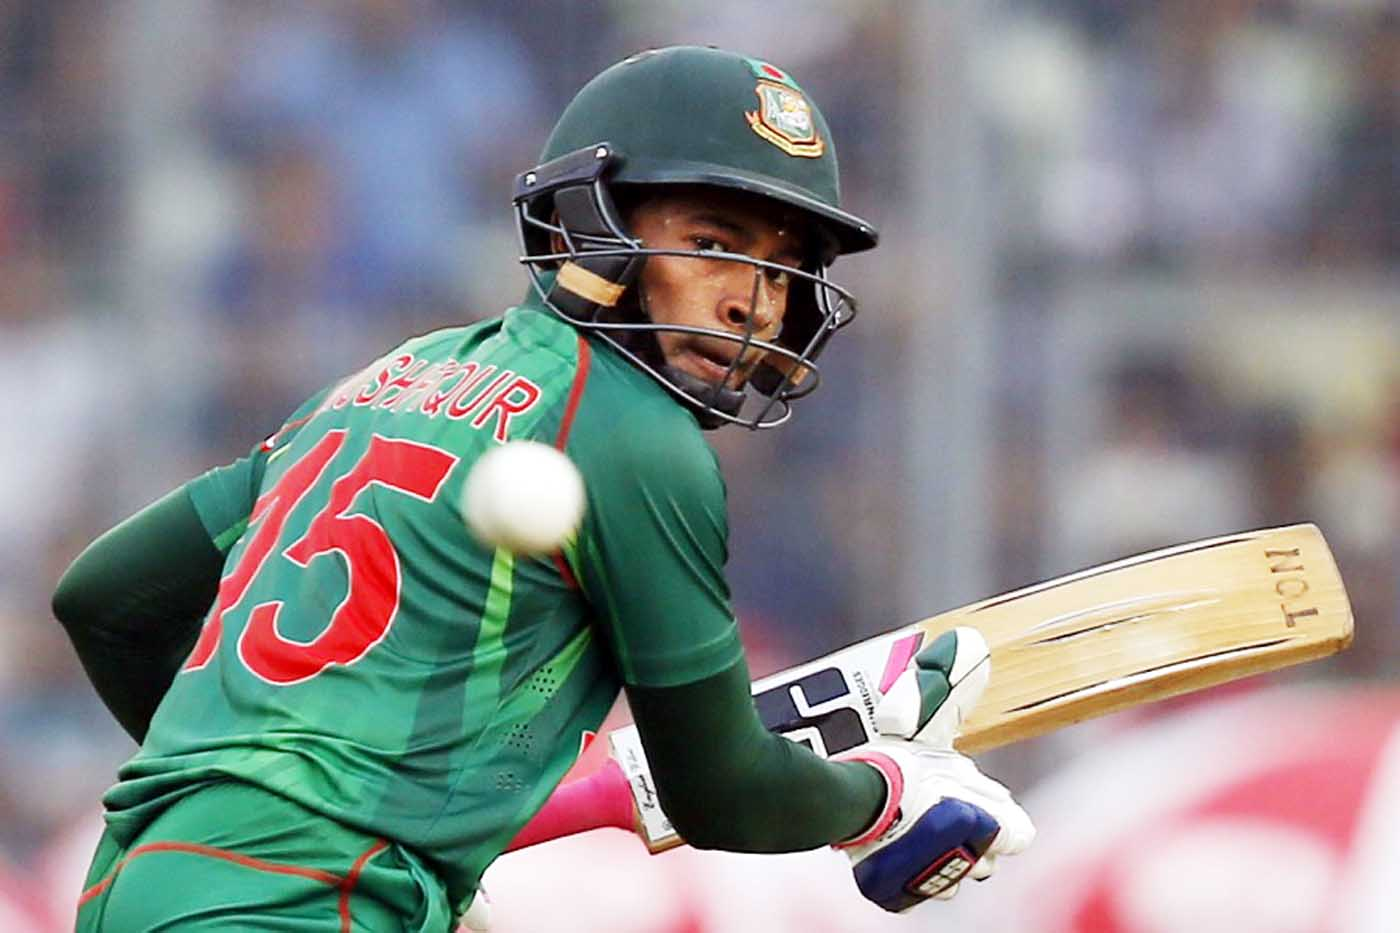 Mushfiqur Rahim plays a shot during the second one-day international cricket match against Afghanistan at the Mirpur Sher-e-Bangla National Cricket Stadium on Wednesday.